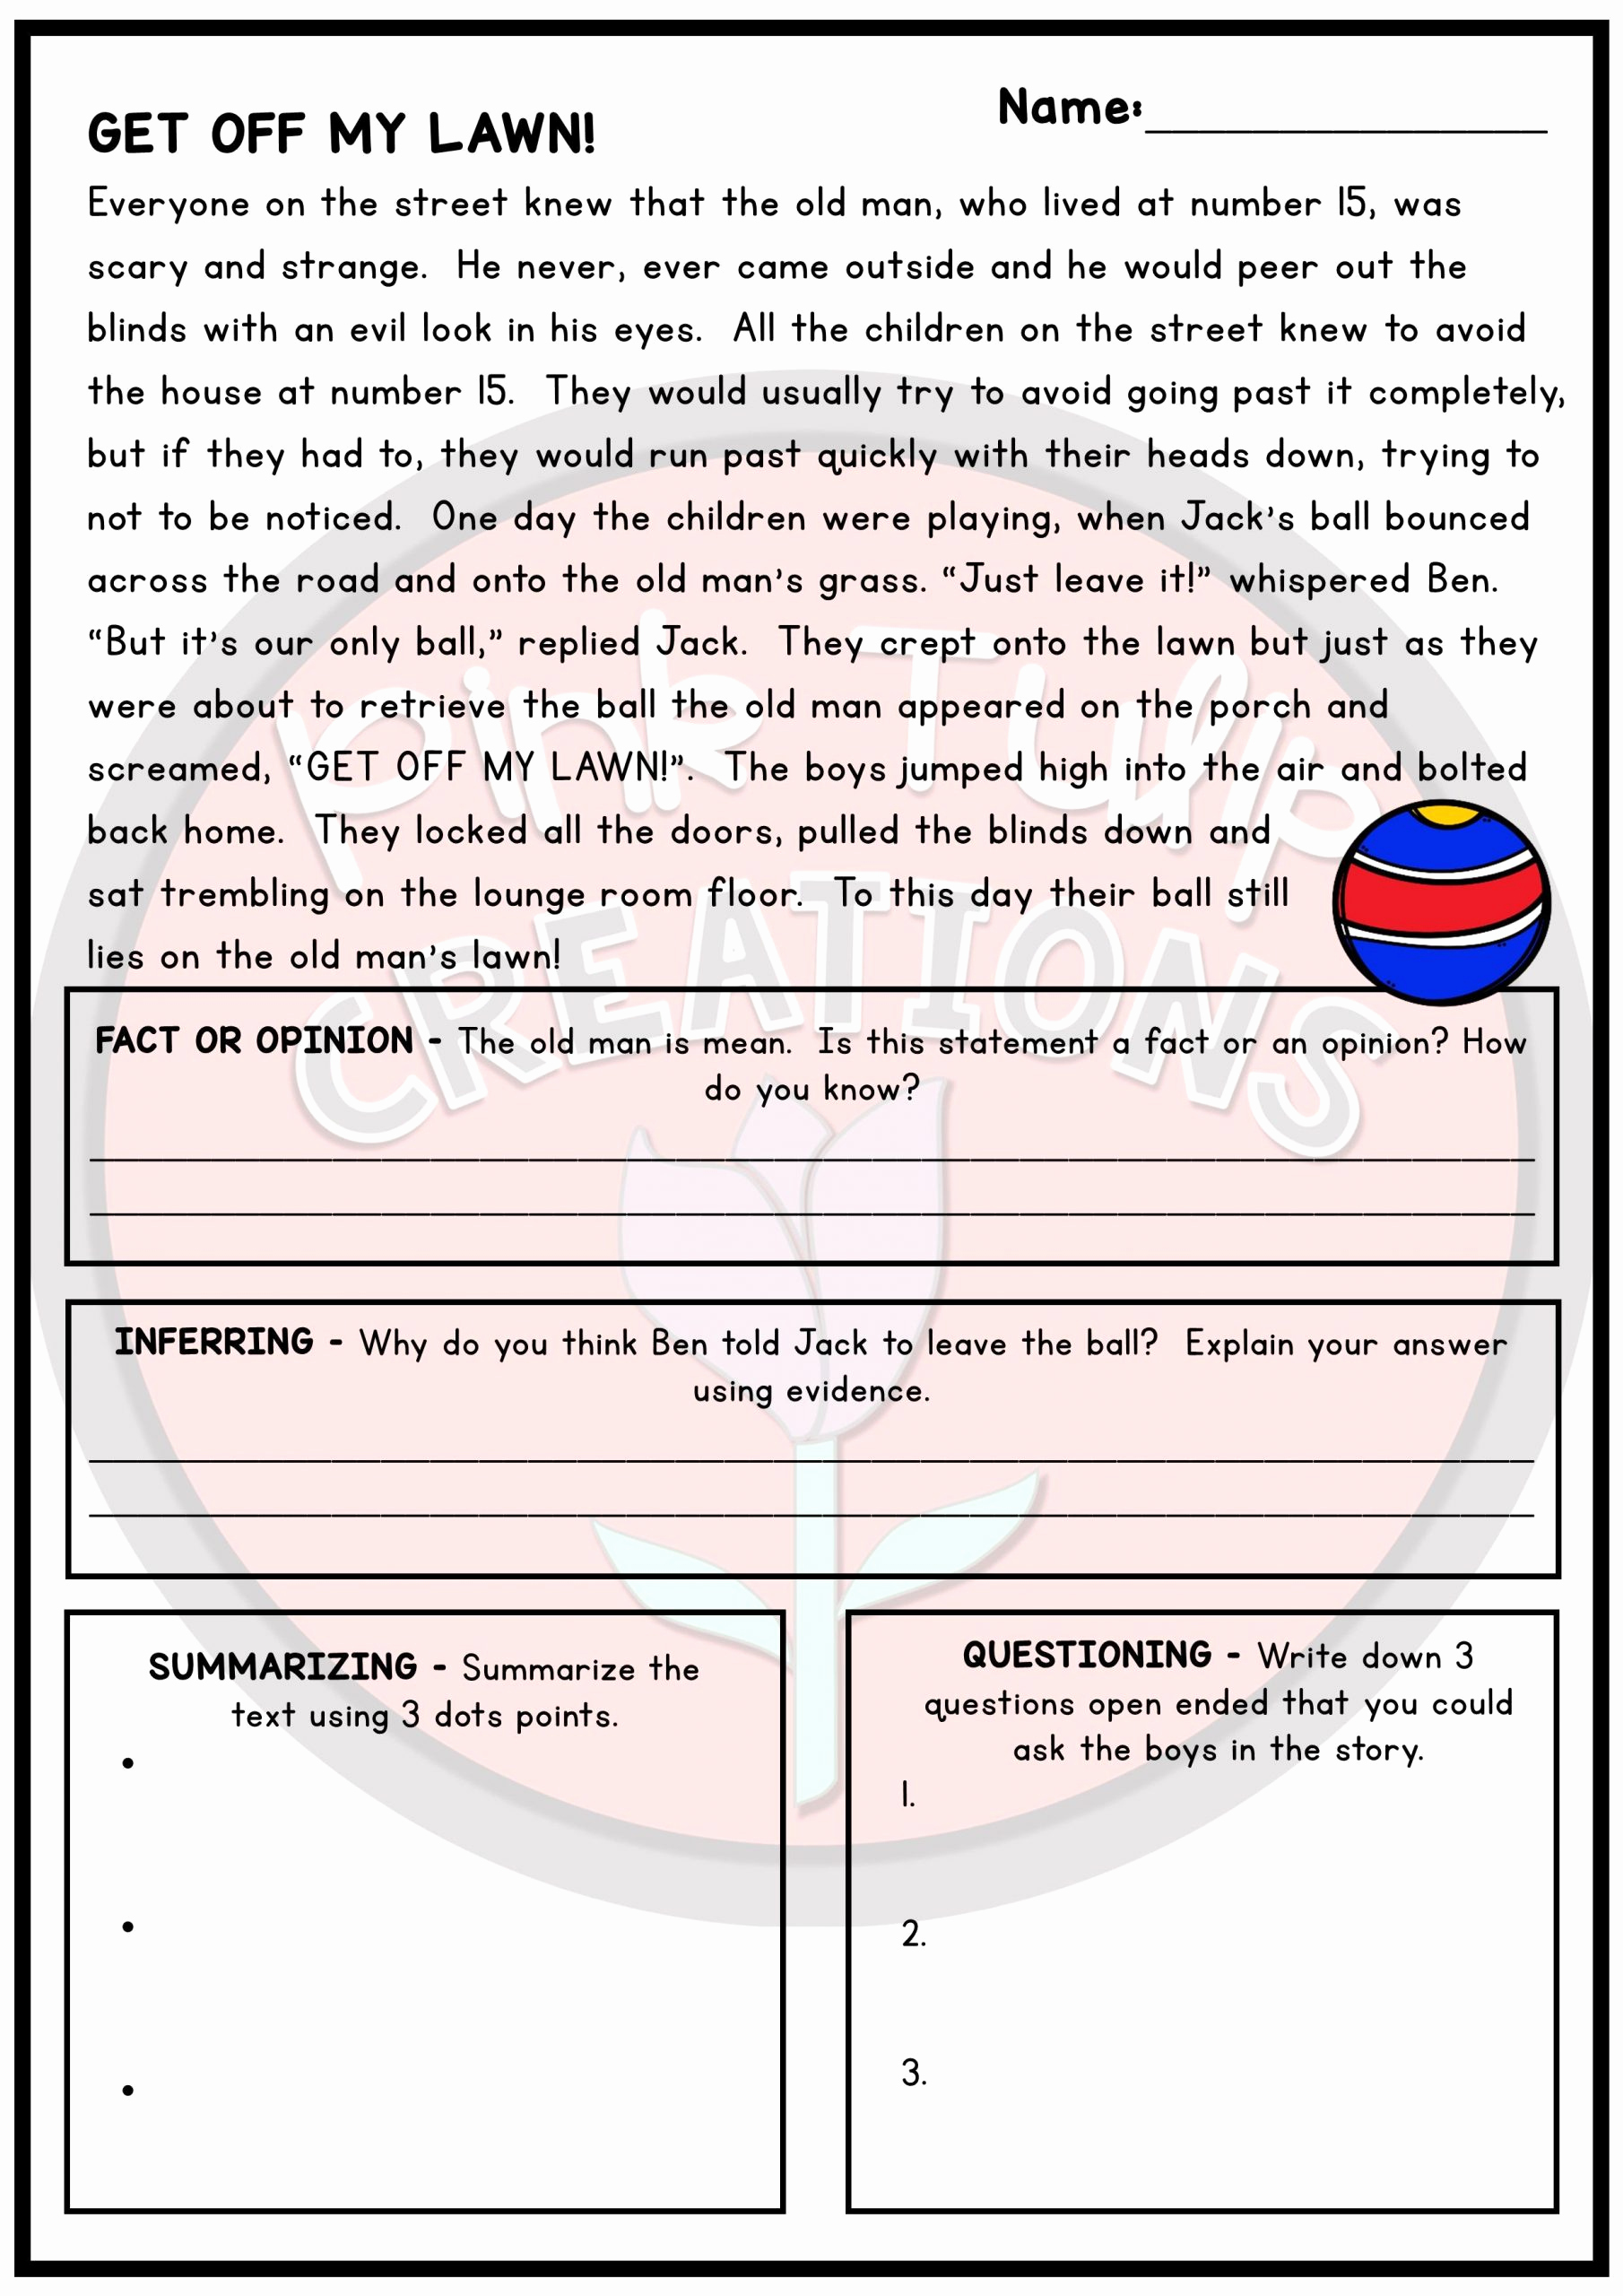 Text Evidence Worksheets 3rd Grade Luxury 20 Text Evidence Worksheet 3rd Grade